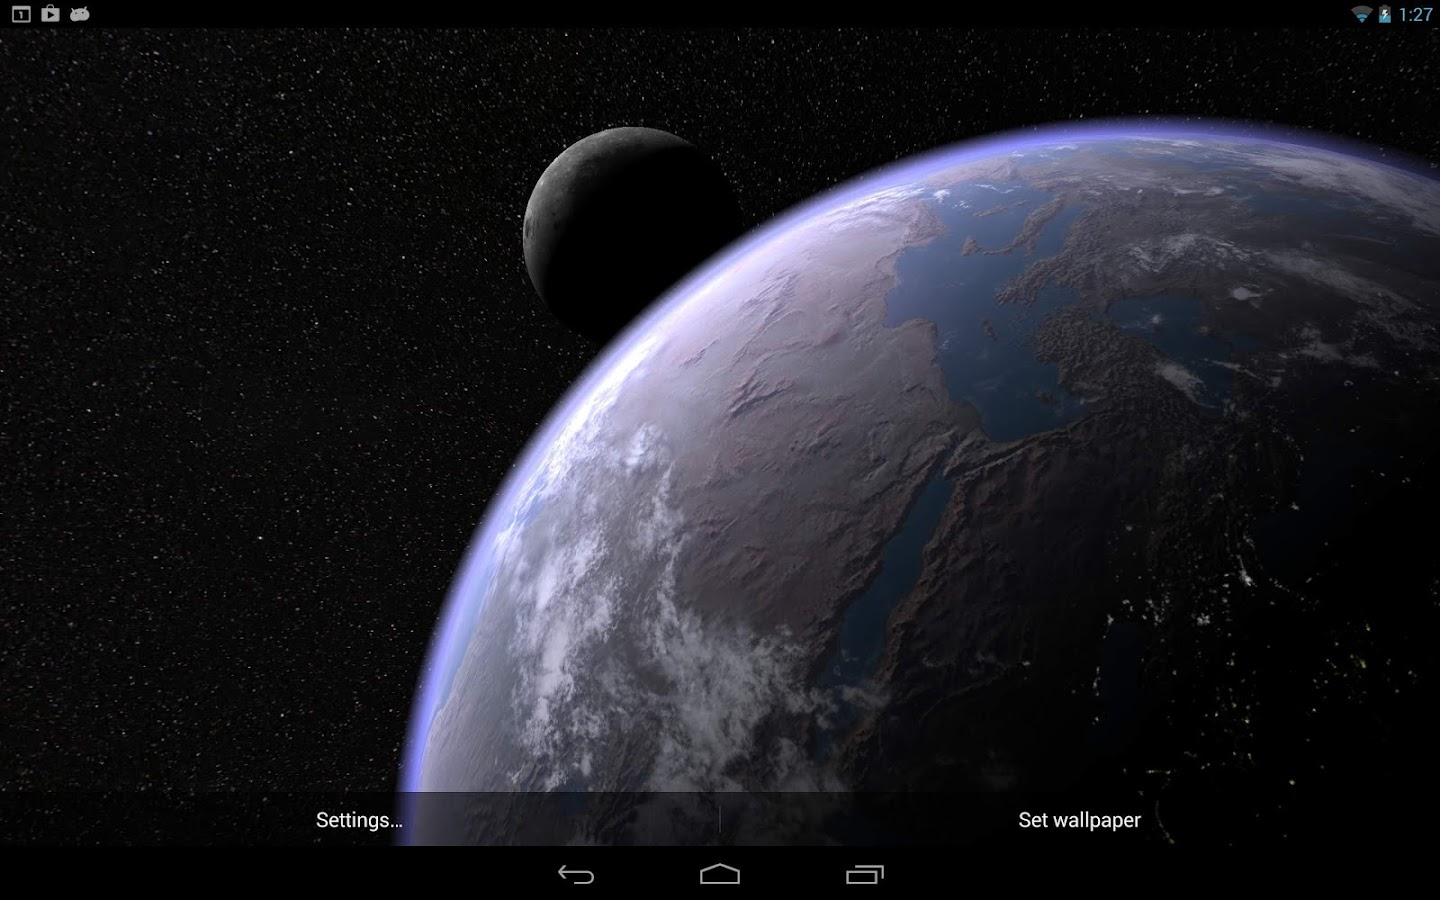 Android 3d Effect Wallpaper Hd: Earth & Moon In HD Gyro 3D PRO